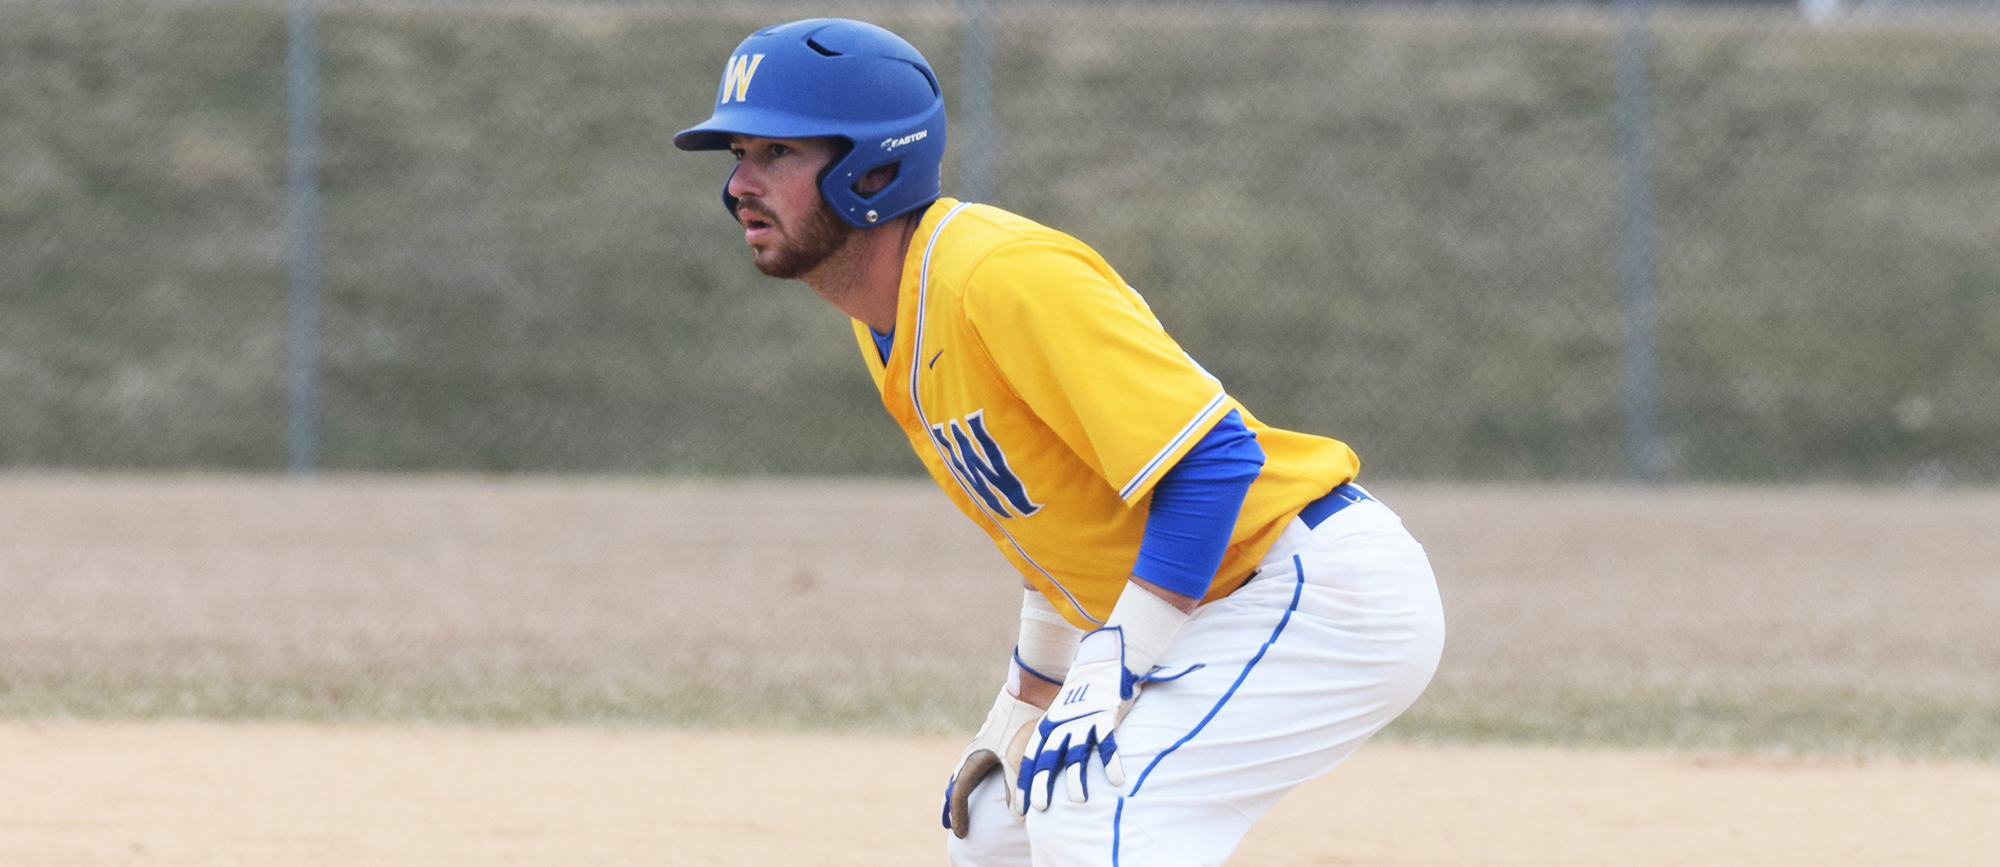 Senior Jared Rosenblatt drove in two runs in Western New England's 6-3 loss to UMass Boston on Thursday. (Photo by Rachael Margossian)